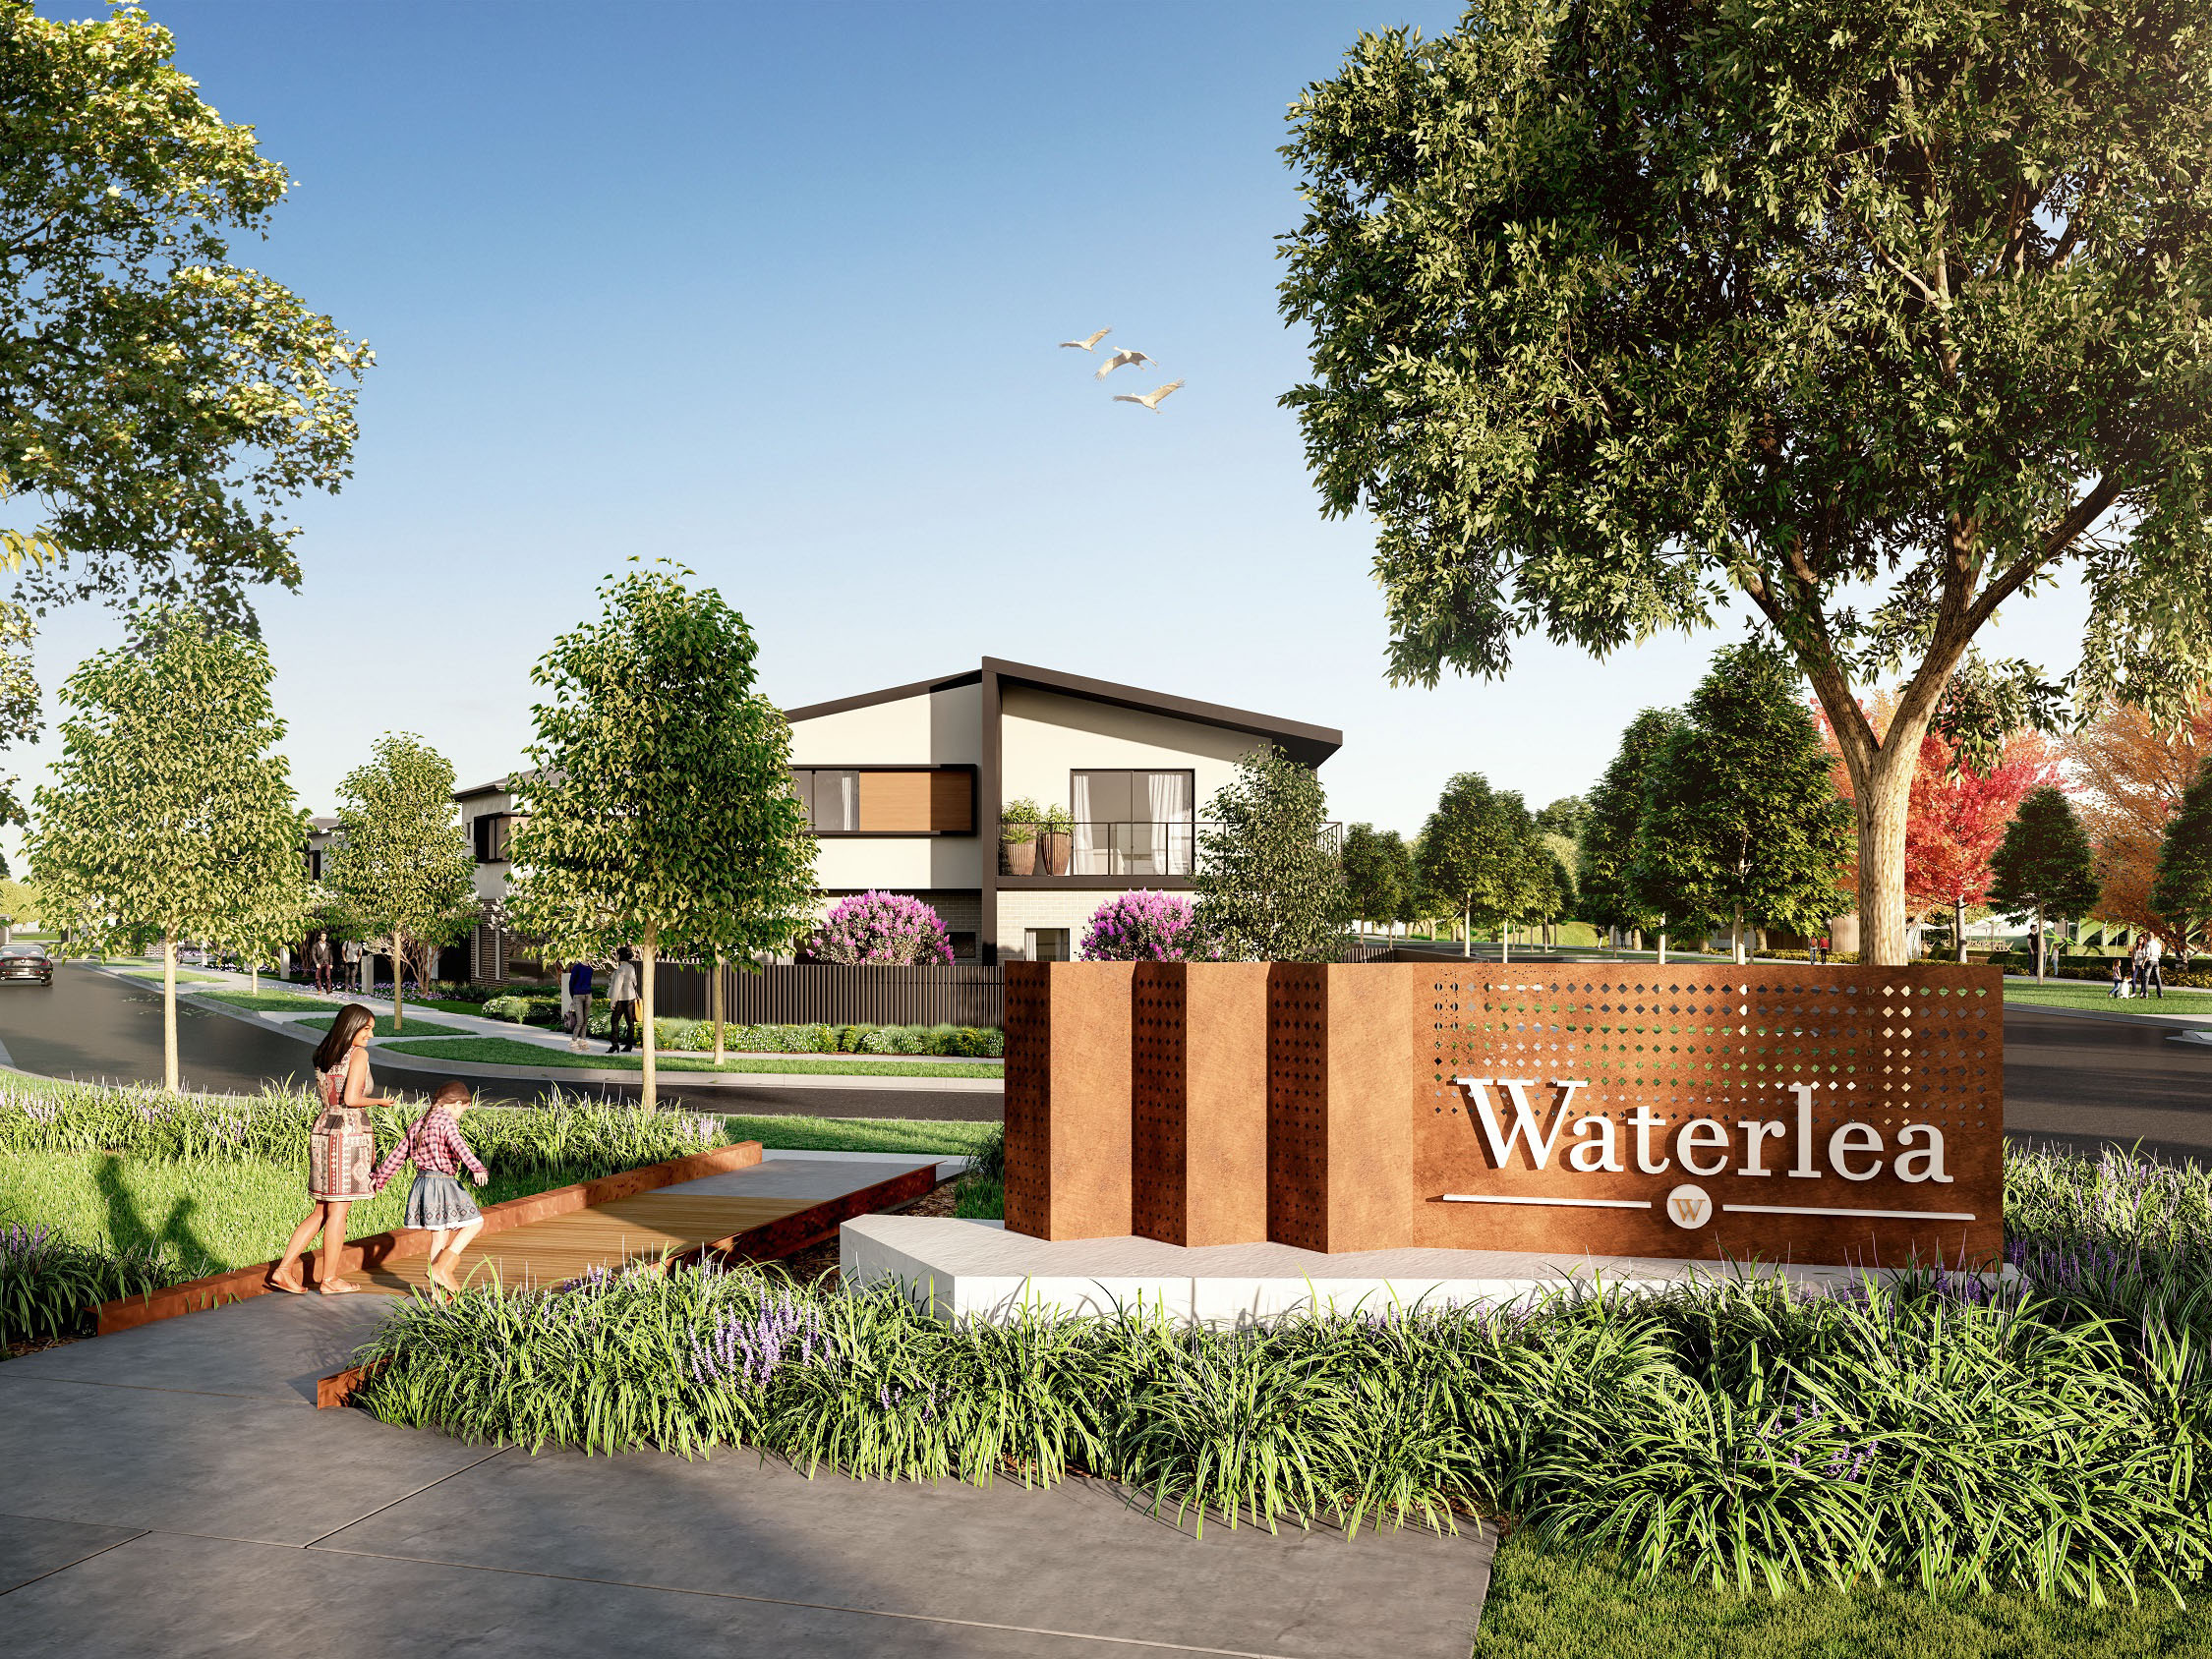 Stockland is lauding the start of construction of Waterlea, the latest sustainable community, that forms part of its growing medium density pipeline of more than 3,000 townhomes across the country. Iameg: Supplied